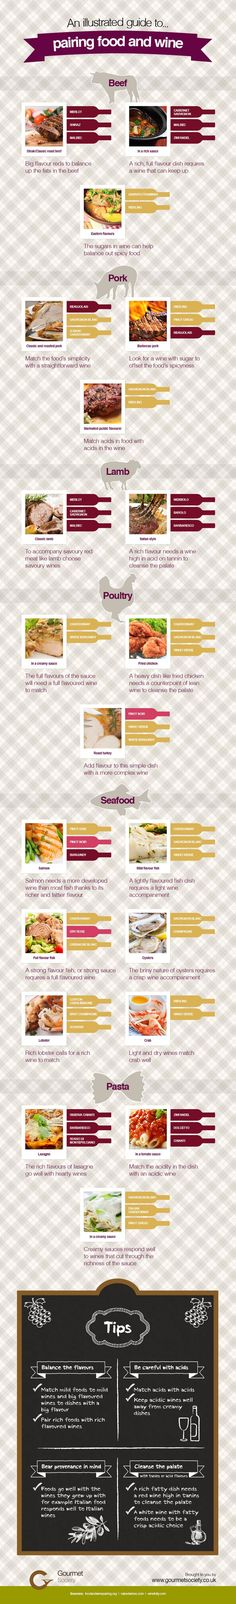 Not sure what wine goes with Salmon? An illustrated guide to pairing Wine and Food is just what you need.